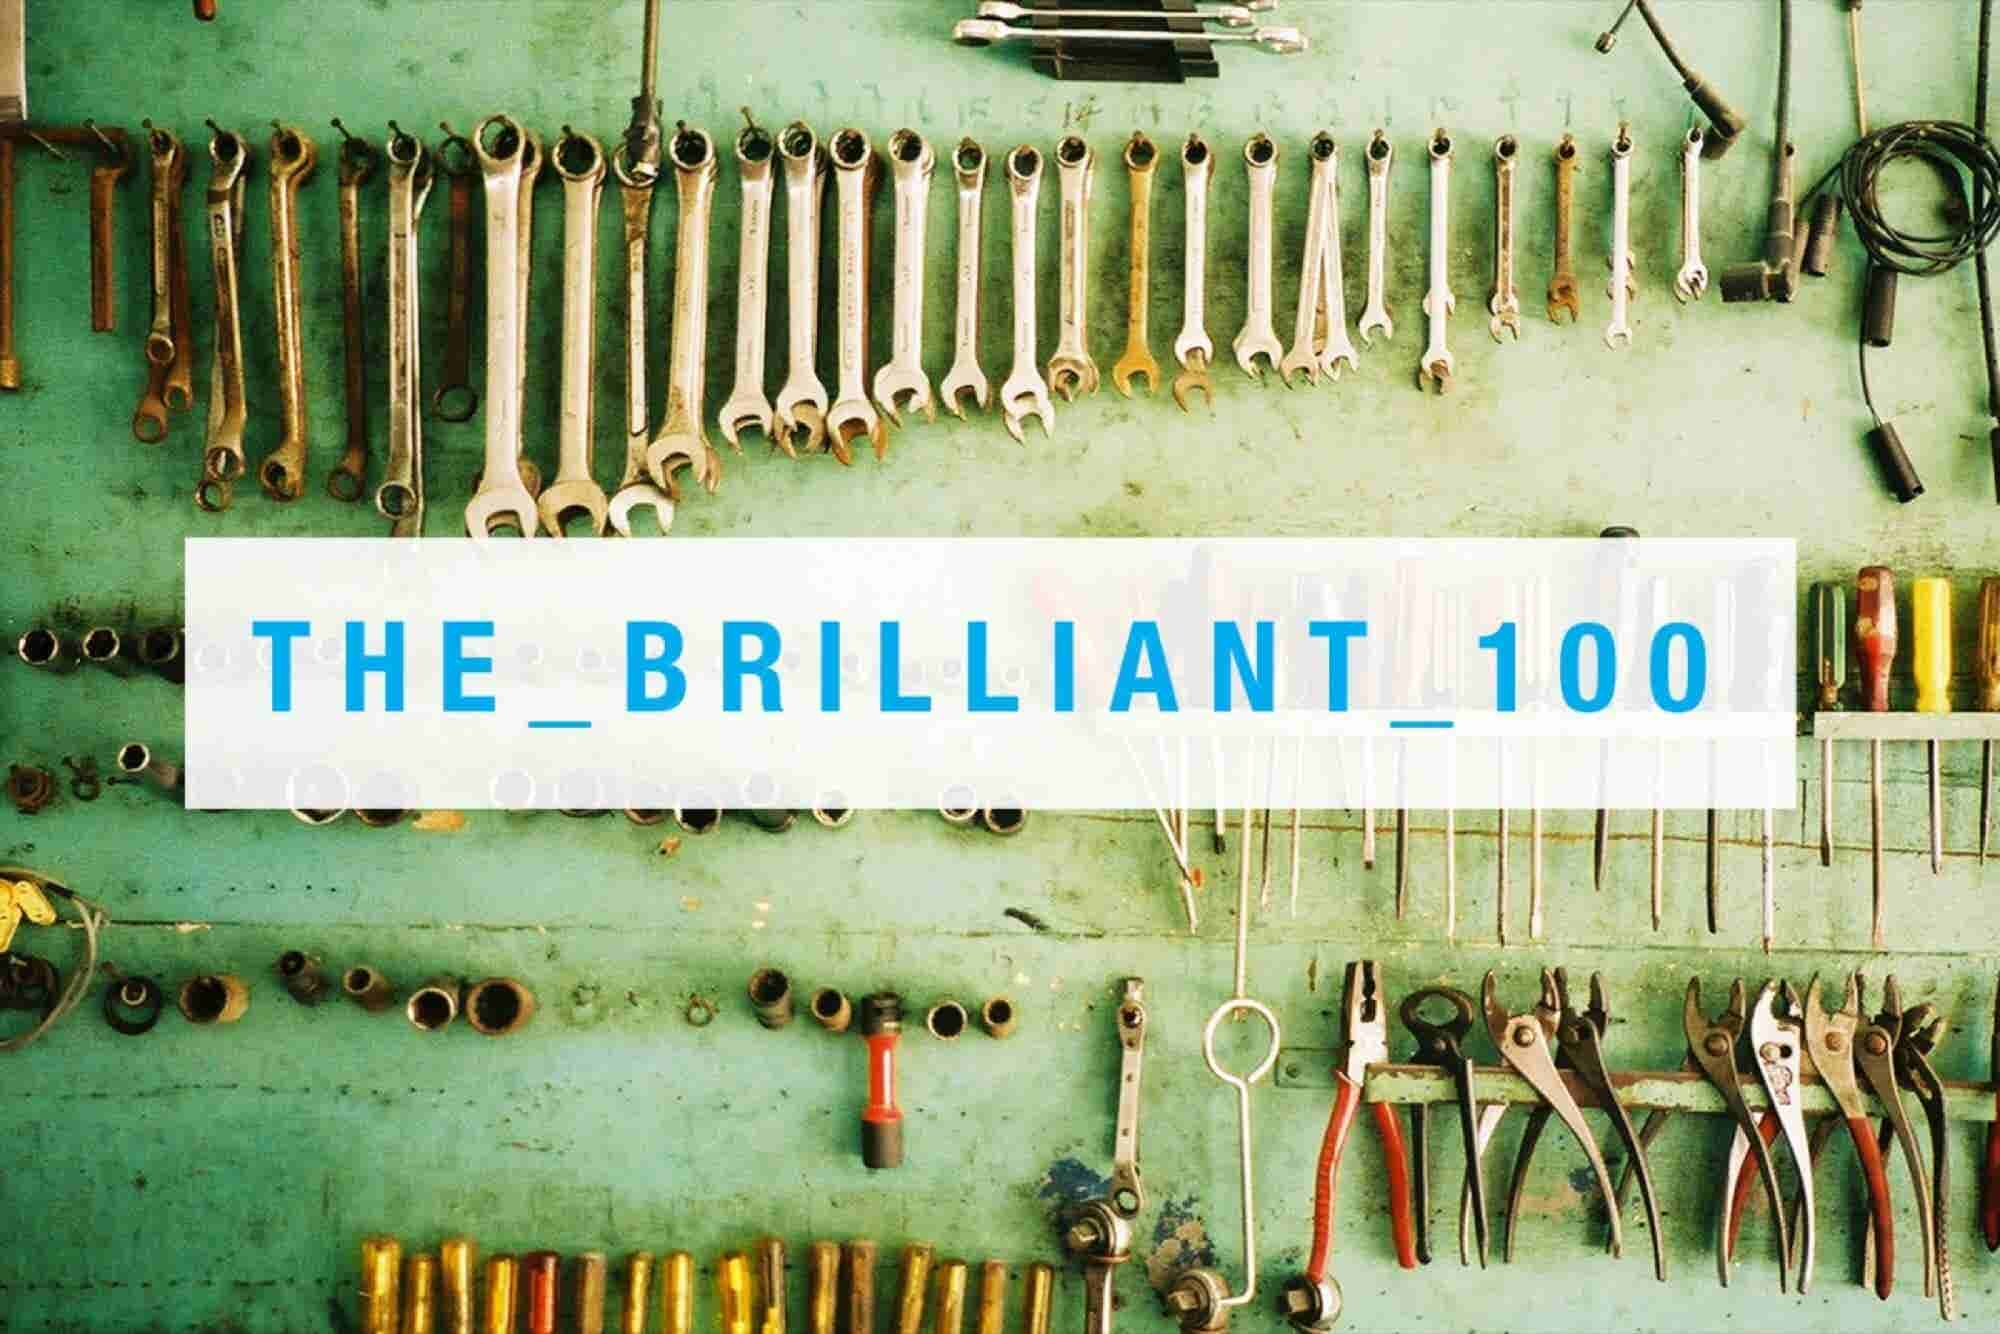 10 Business Tools to Watch - Entrepreneur's Brilliant 100